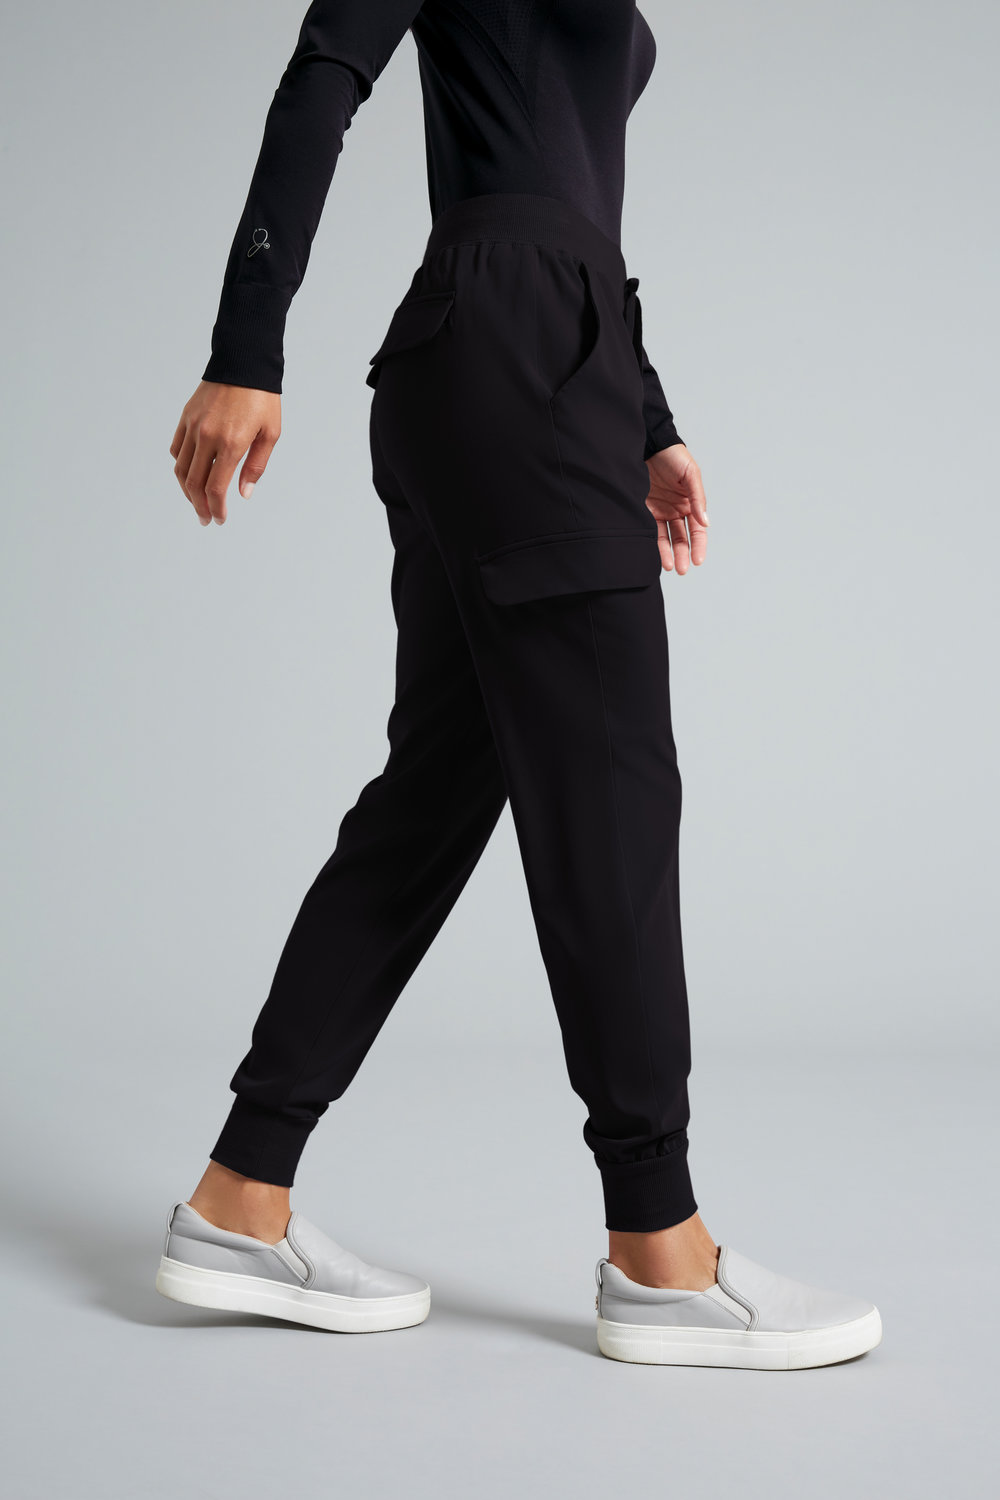 health care age care uniform trousers black